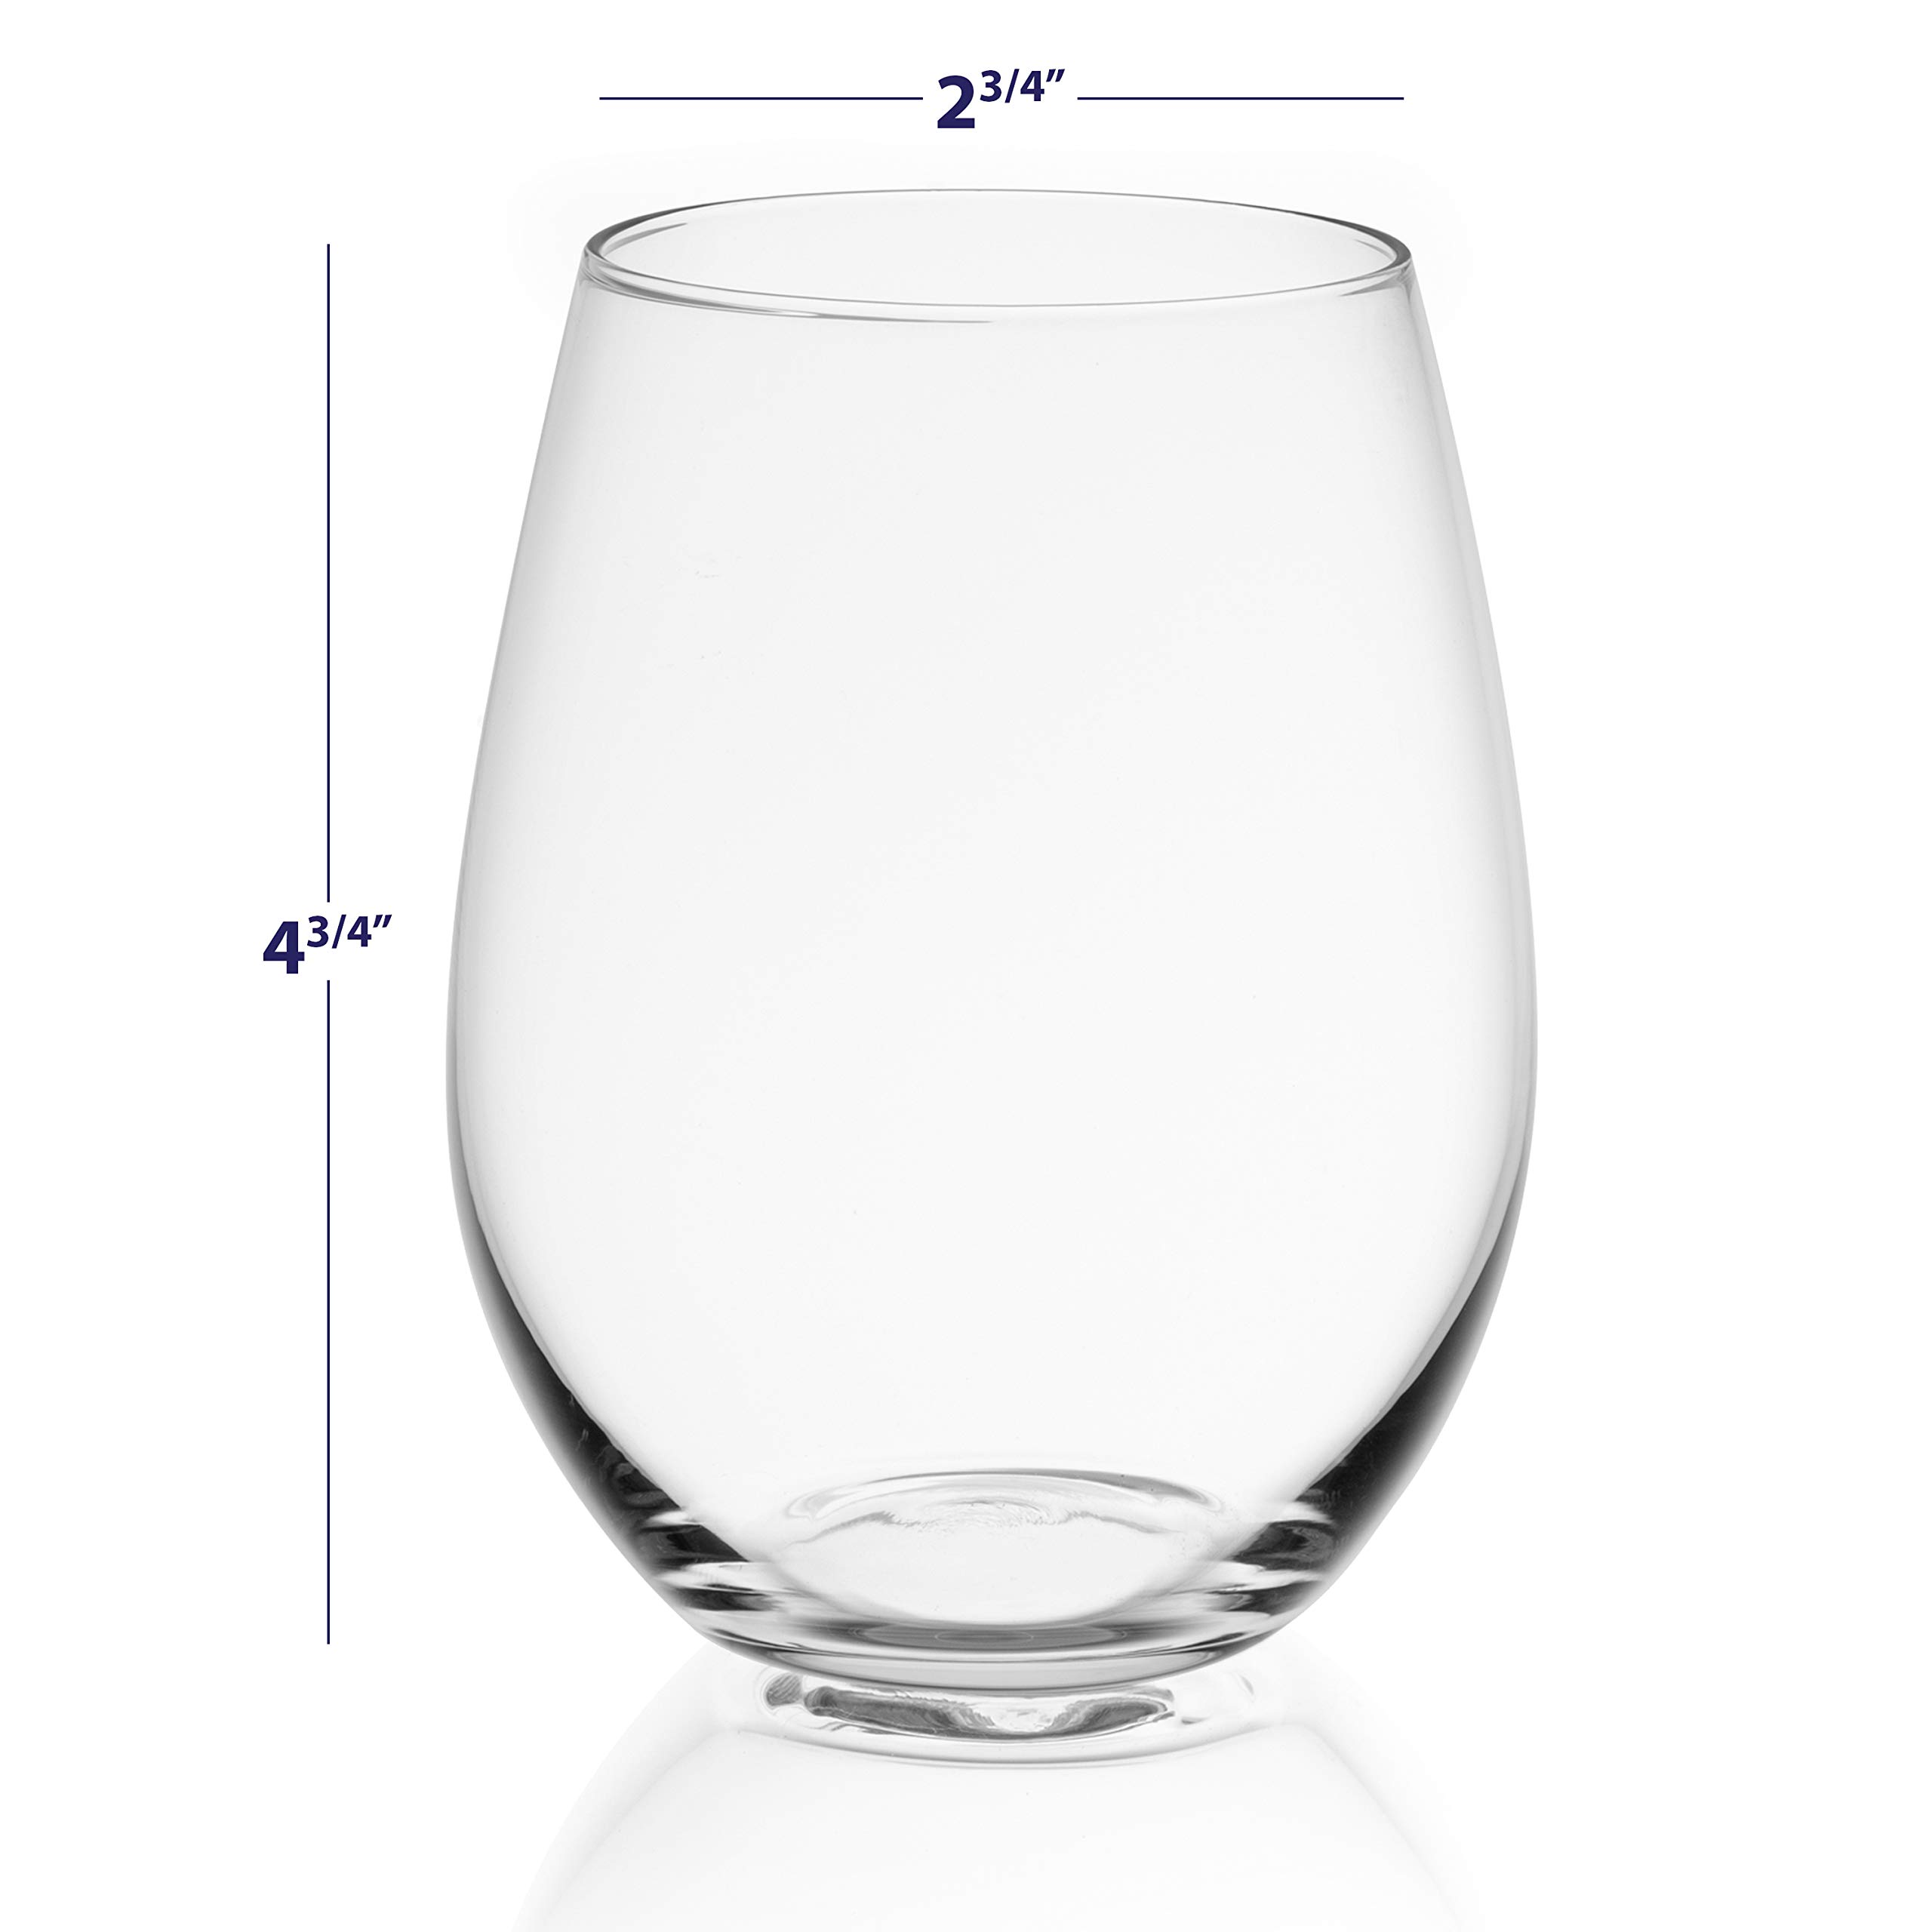 JoyJolt Spirits Stemless Wine Glasses for Red or White Wine (Set of 4)-19-Ounces by JoyJolt (Image #4)